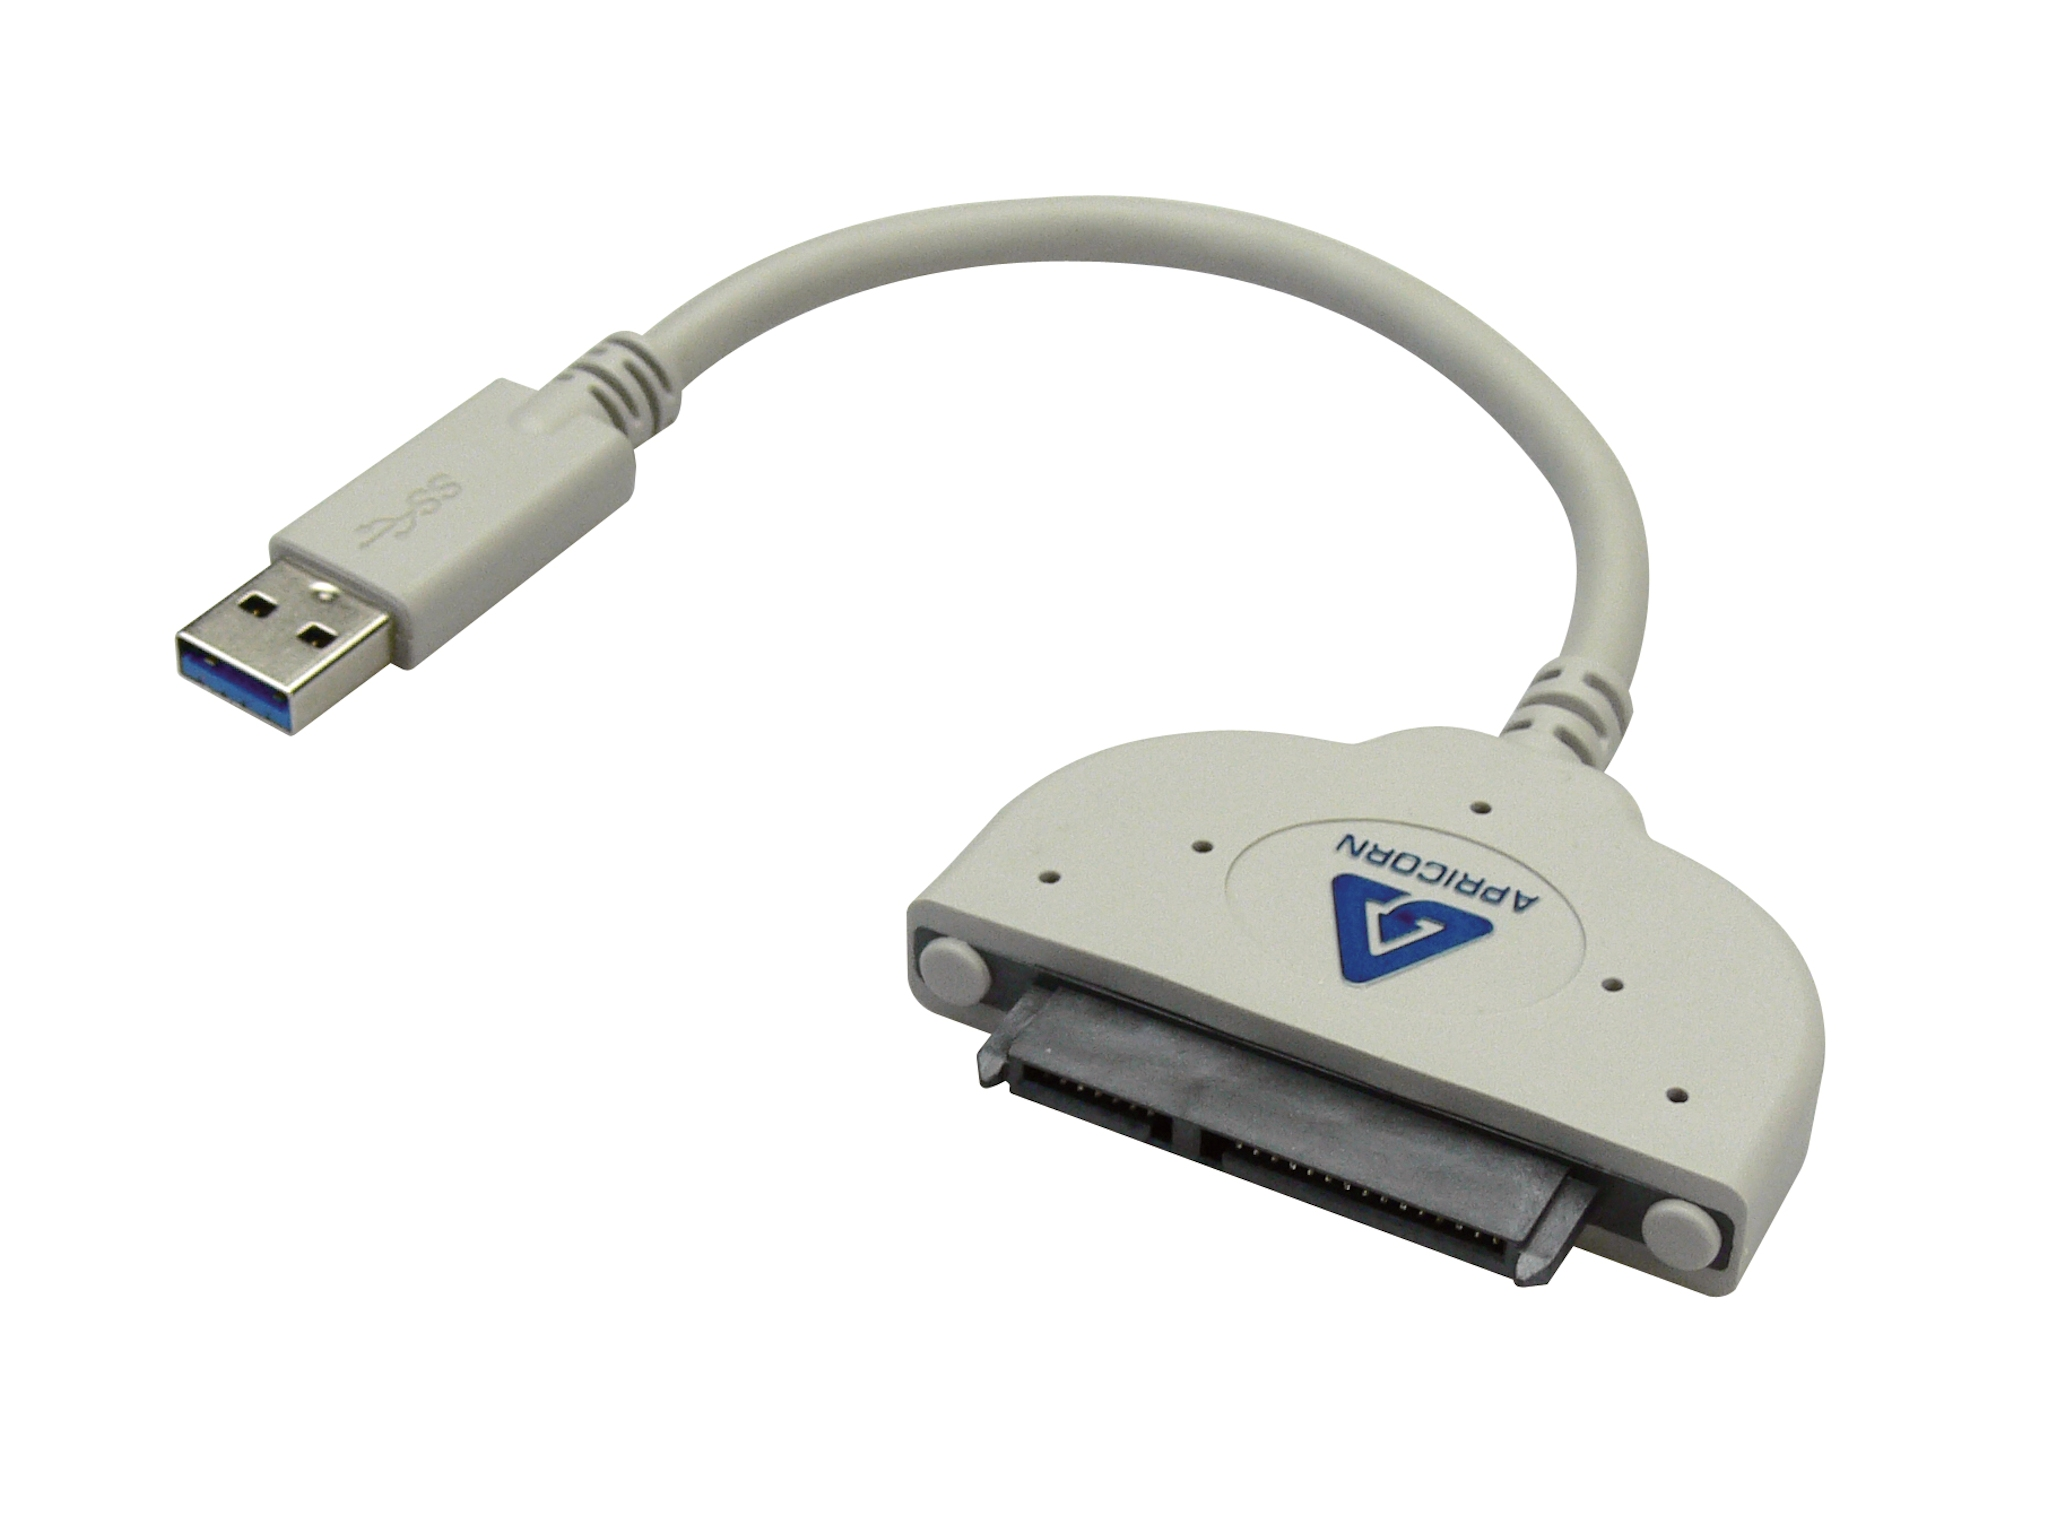 Sandberg Presents USB 3.0 Hard Disk Clone Cable